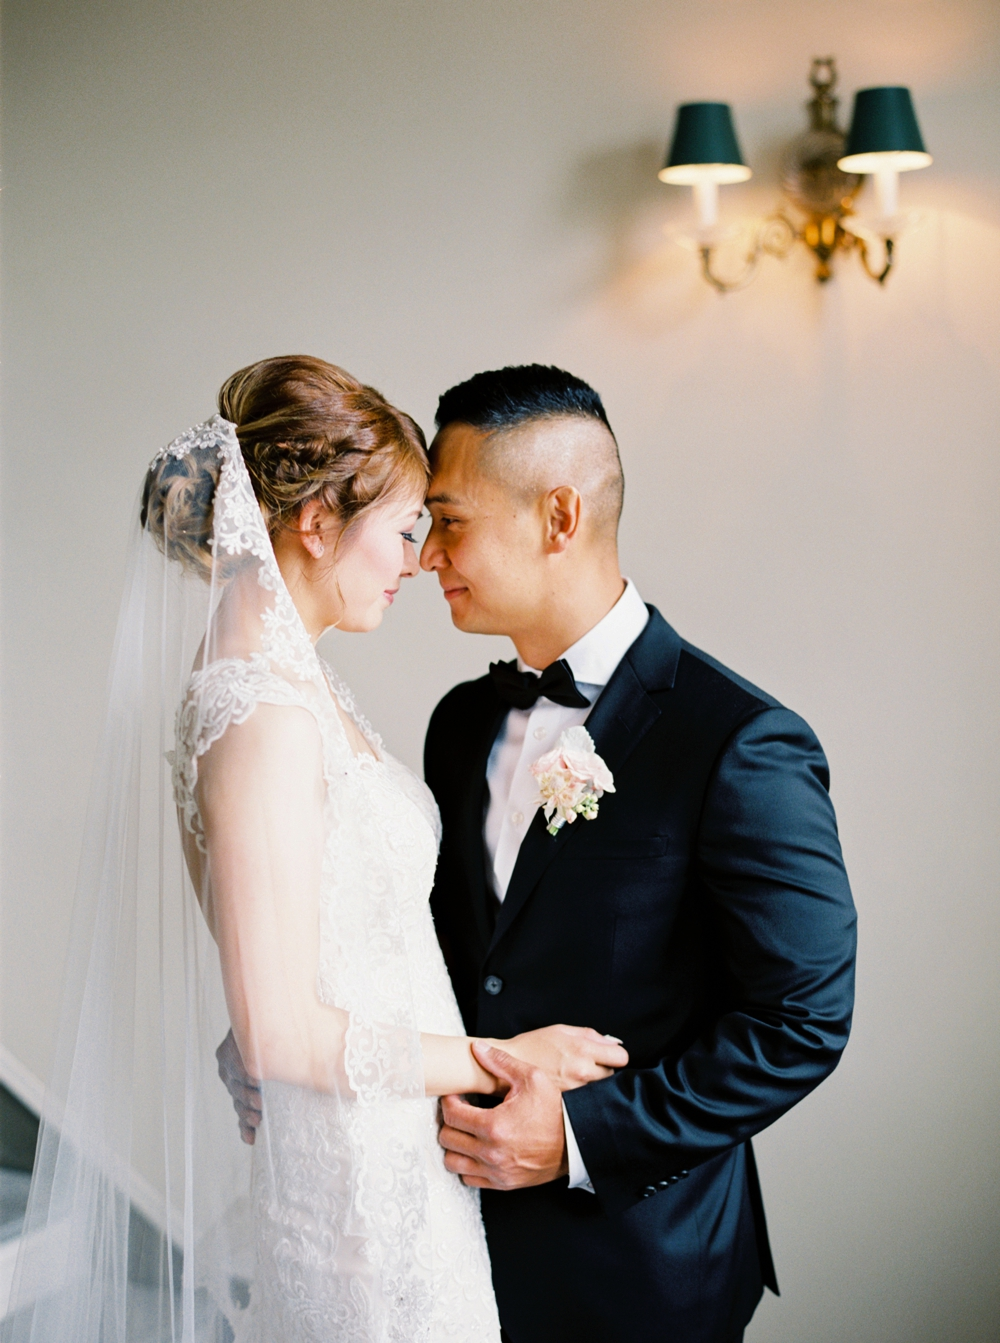 Calgary Wedding Photographer | Fairmont Hotel Macdonald Wedding | J'adore Weddings & Events Design | Edmonton Photography | Fine Art Film Wedding Photographer